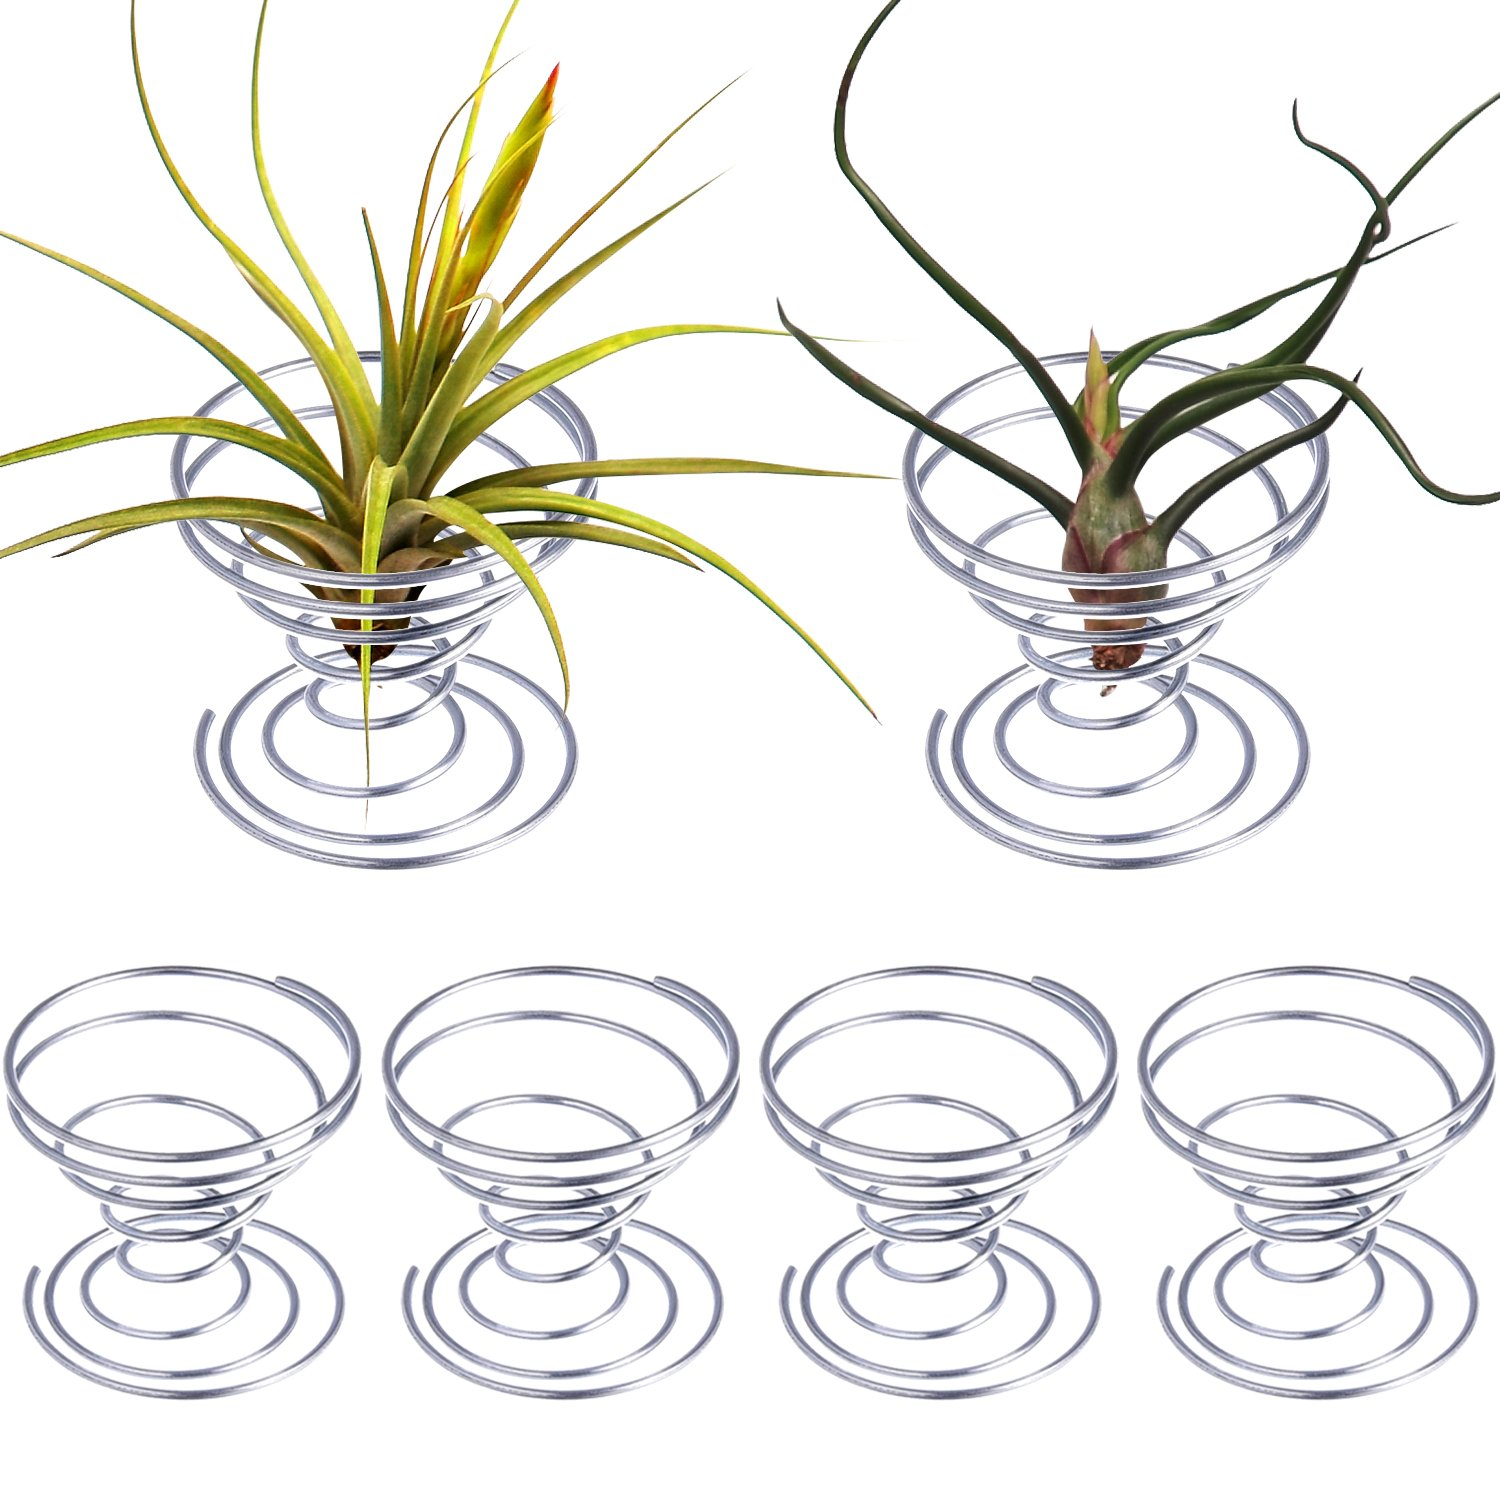 Hestya 6 Pieces Air Plant Stand Airplant Container Tillandsia Holder Stainless Steel Plant Display Racks, Silver